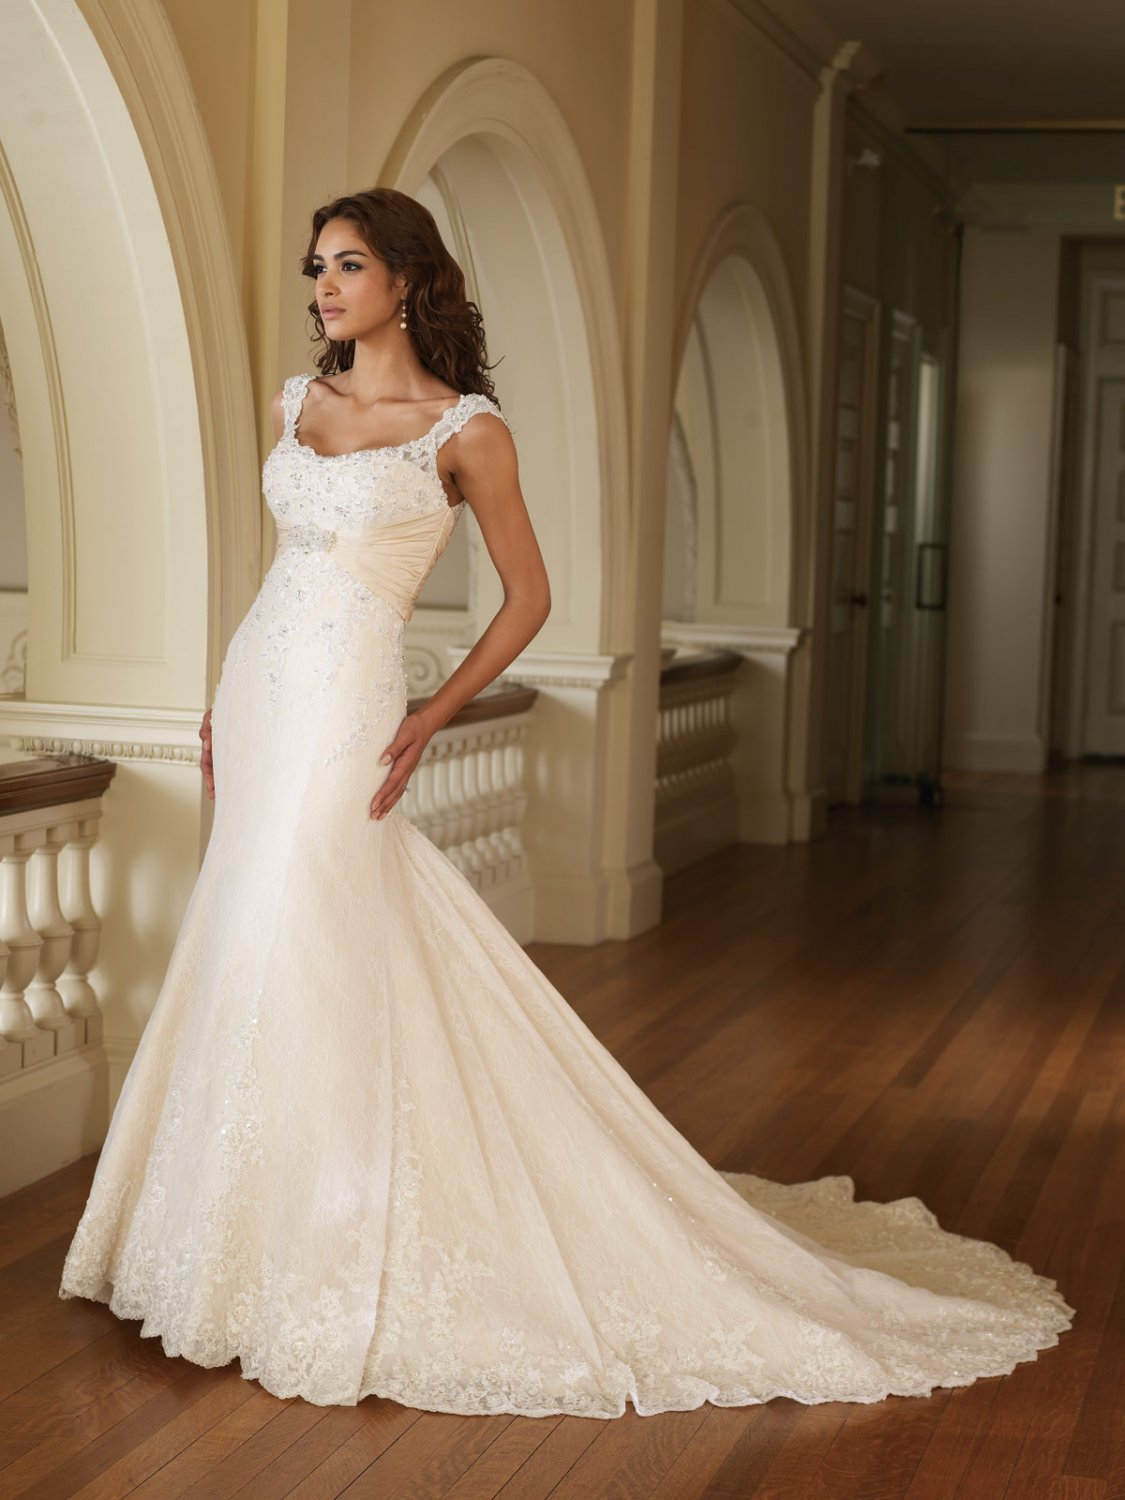 Scatter Appliqued and Beaded Mermaid Wedding Dress MC0009